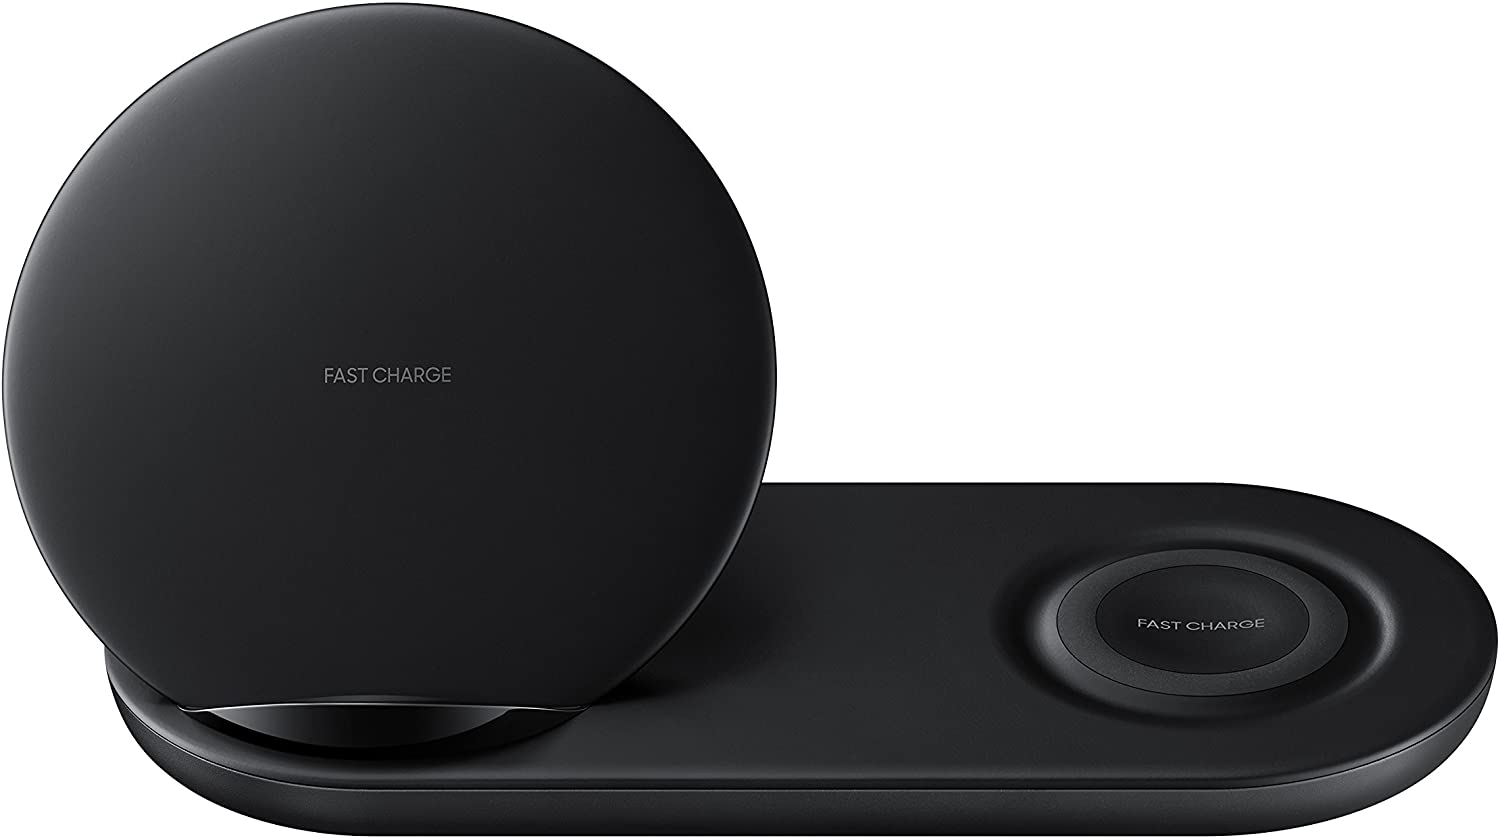 Samsung Wireless Charger DUO, Fast Charge Stand & Pad, Universally Compatible with Qi Enabled Phones and Select Watches (US Version), Black